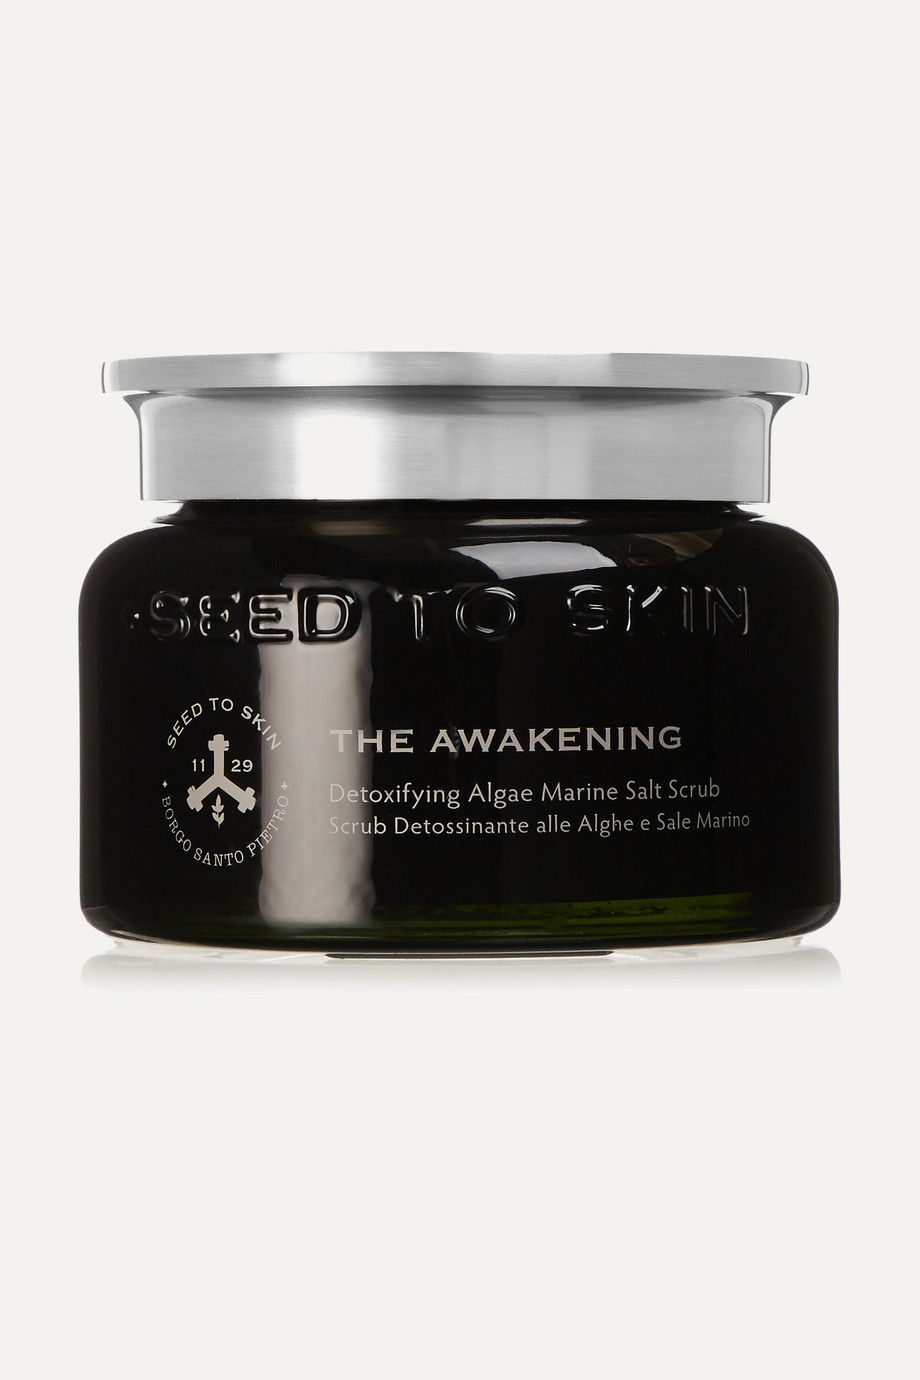 Seed to Skin The Awakening Algae Marine Salt Scrub, 300ml